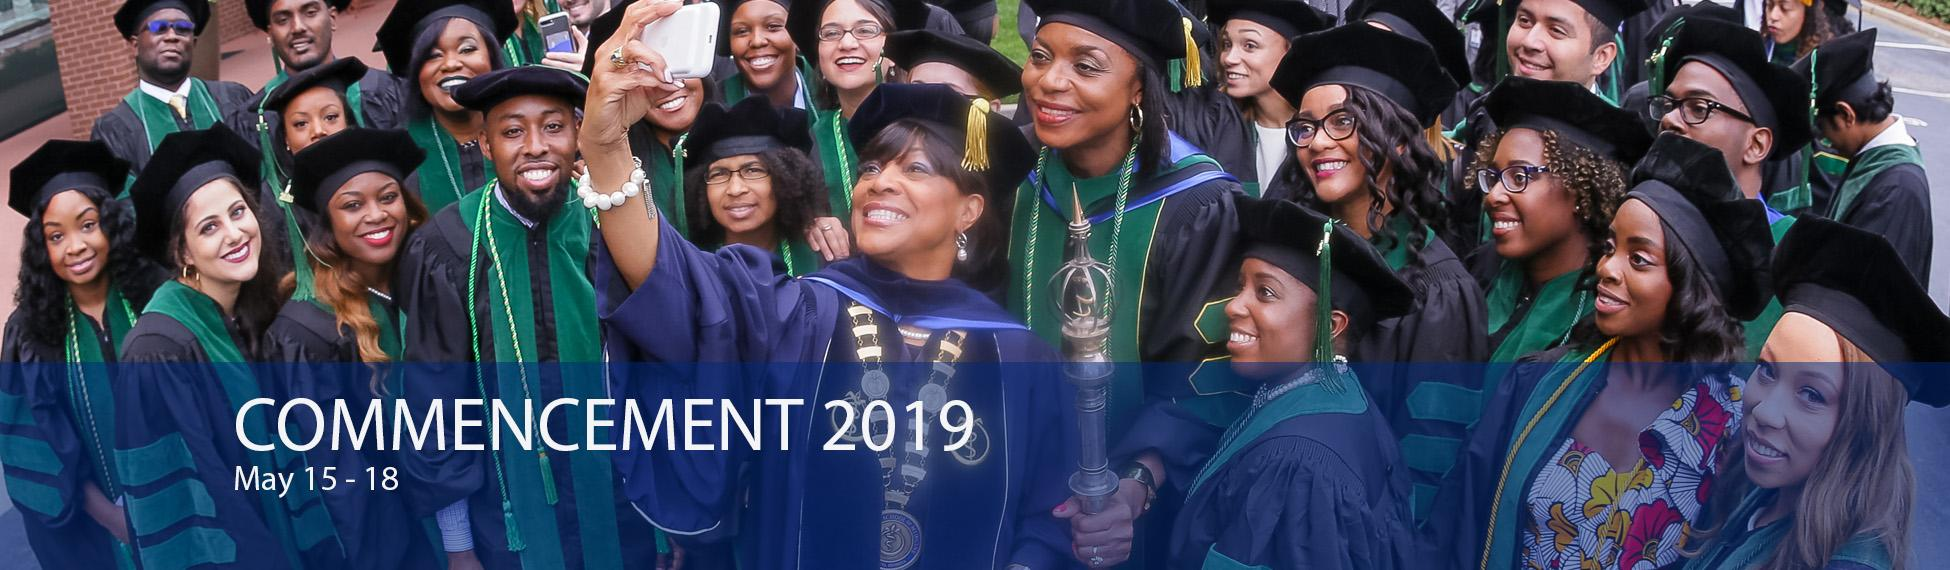 Commencement 2019, May 15-18